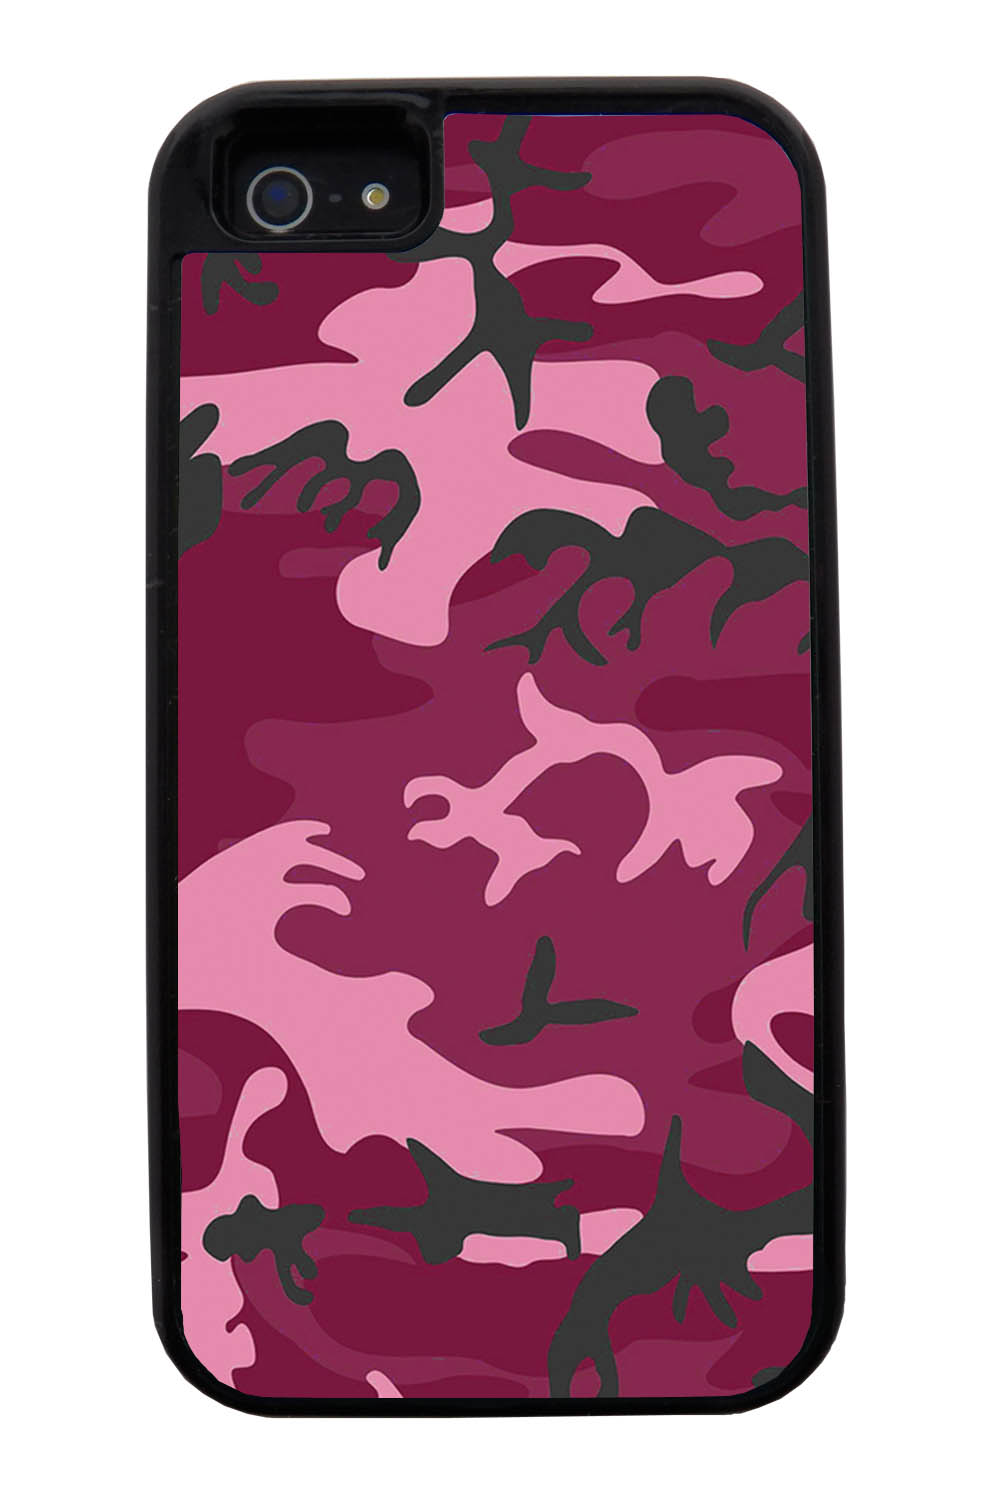 Apple iPhone 5 / 5S Camo Case - Hot Pink - Woodland - Black Tough Hybrid Case